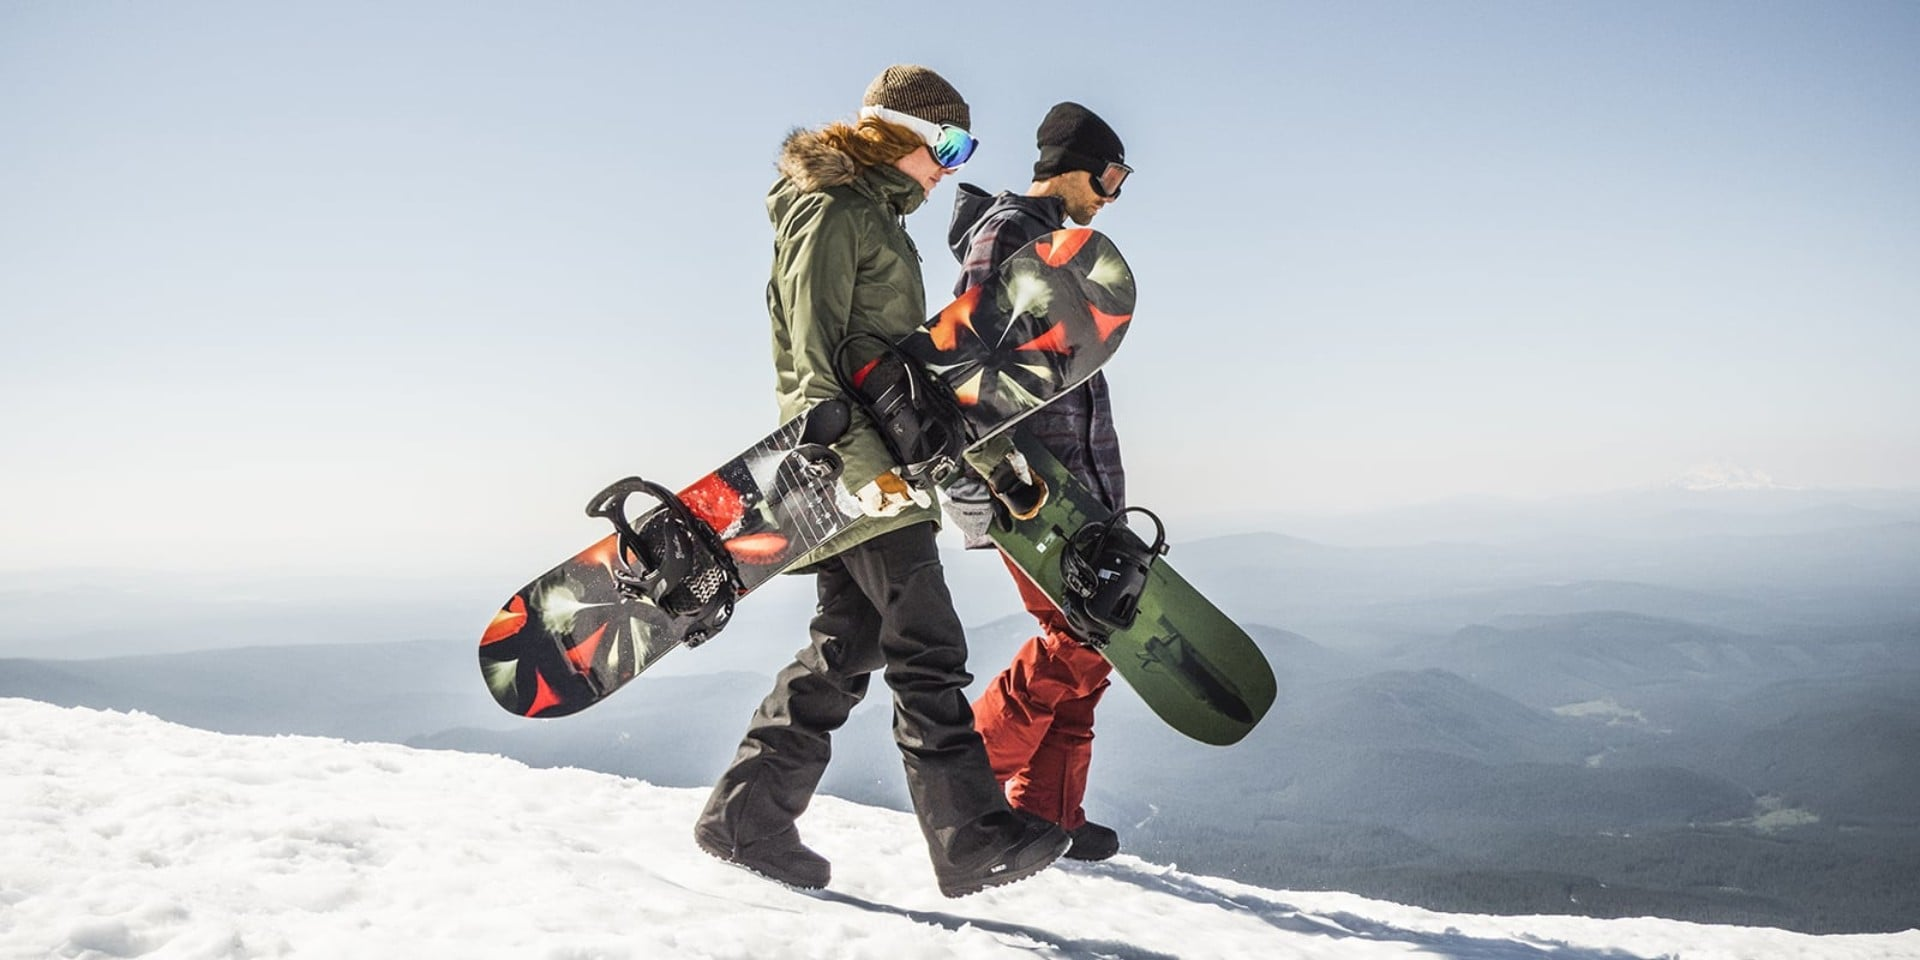 Snowboard Buyer's Guide - Beginner, Kids, Women, Men, Advanced